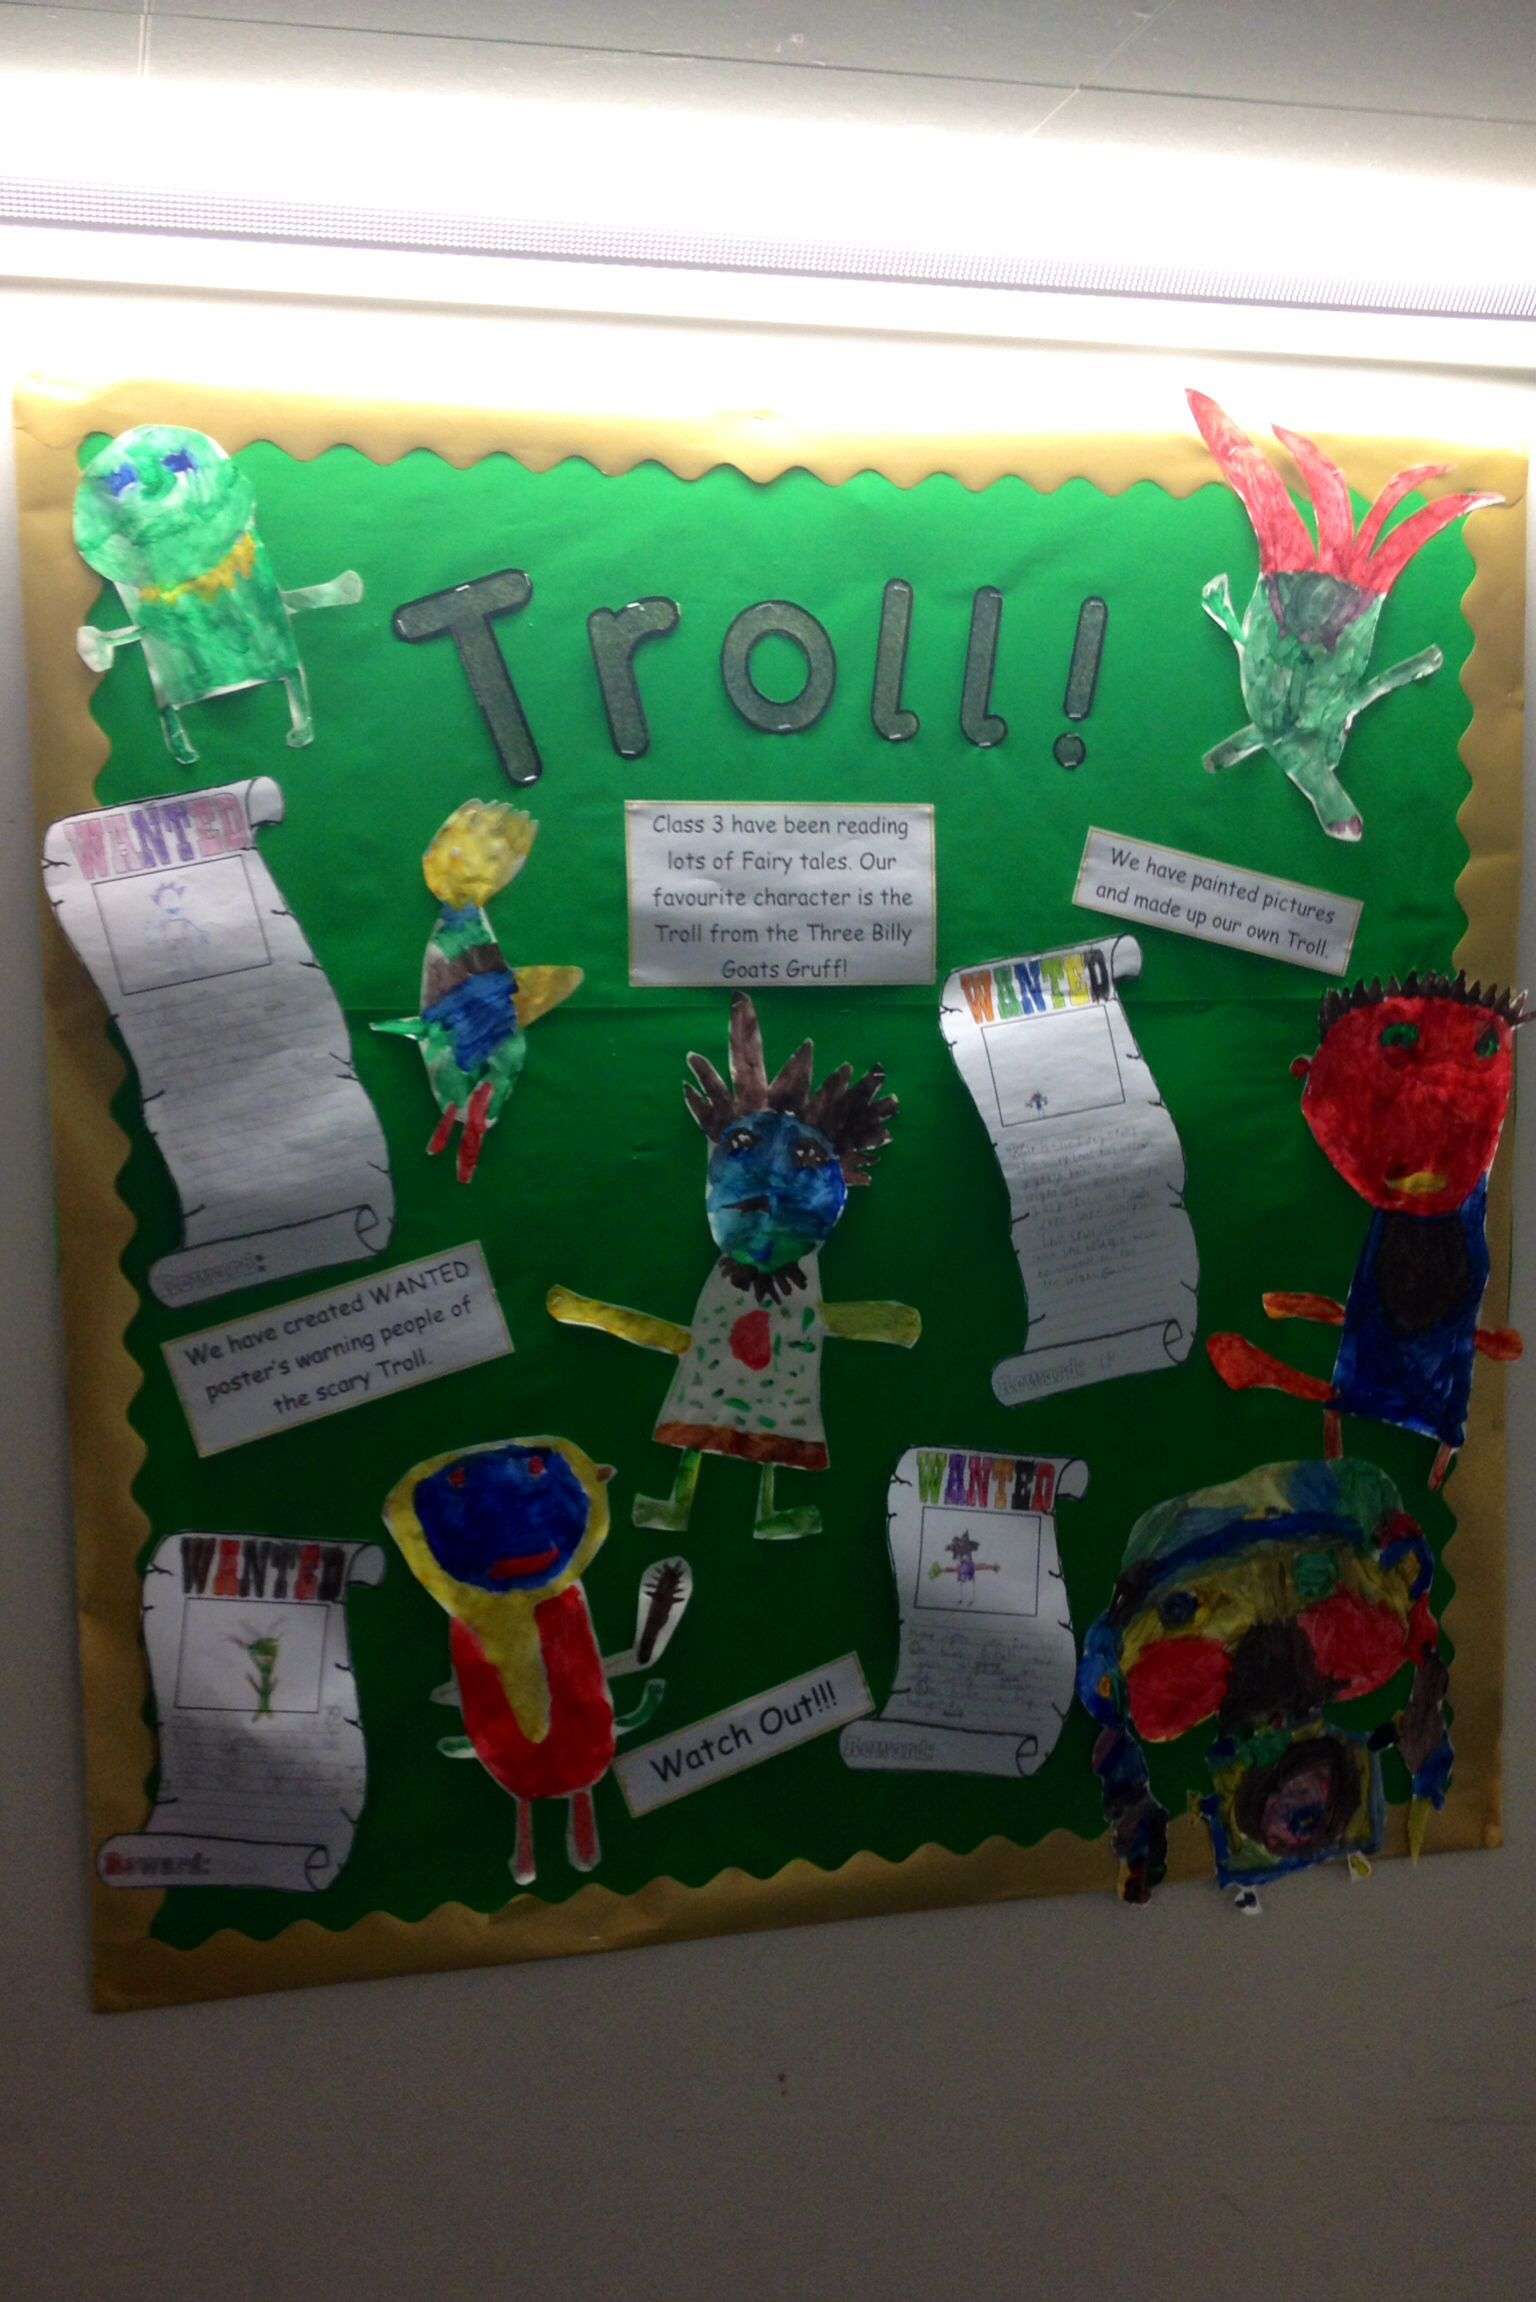 Troll Display From The Three Billy Goats Gruff